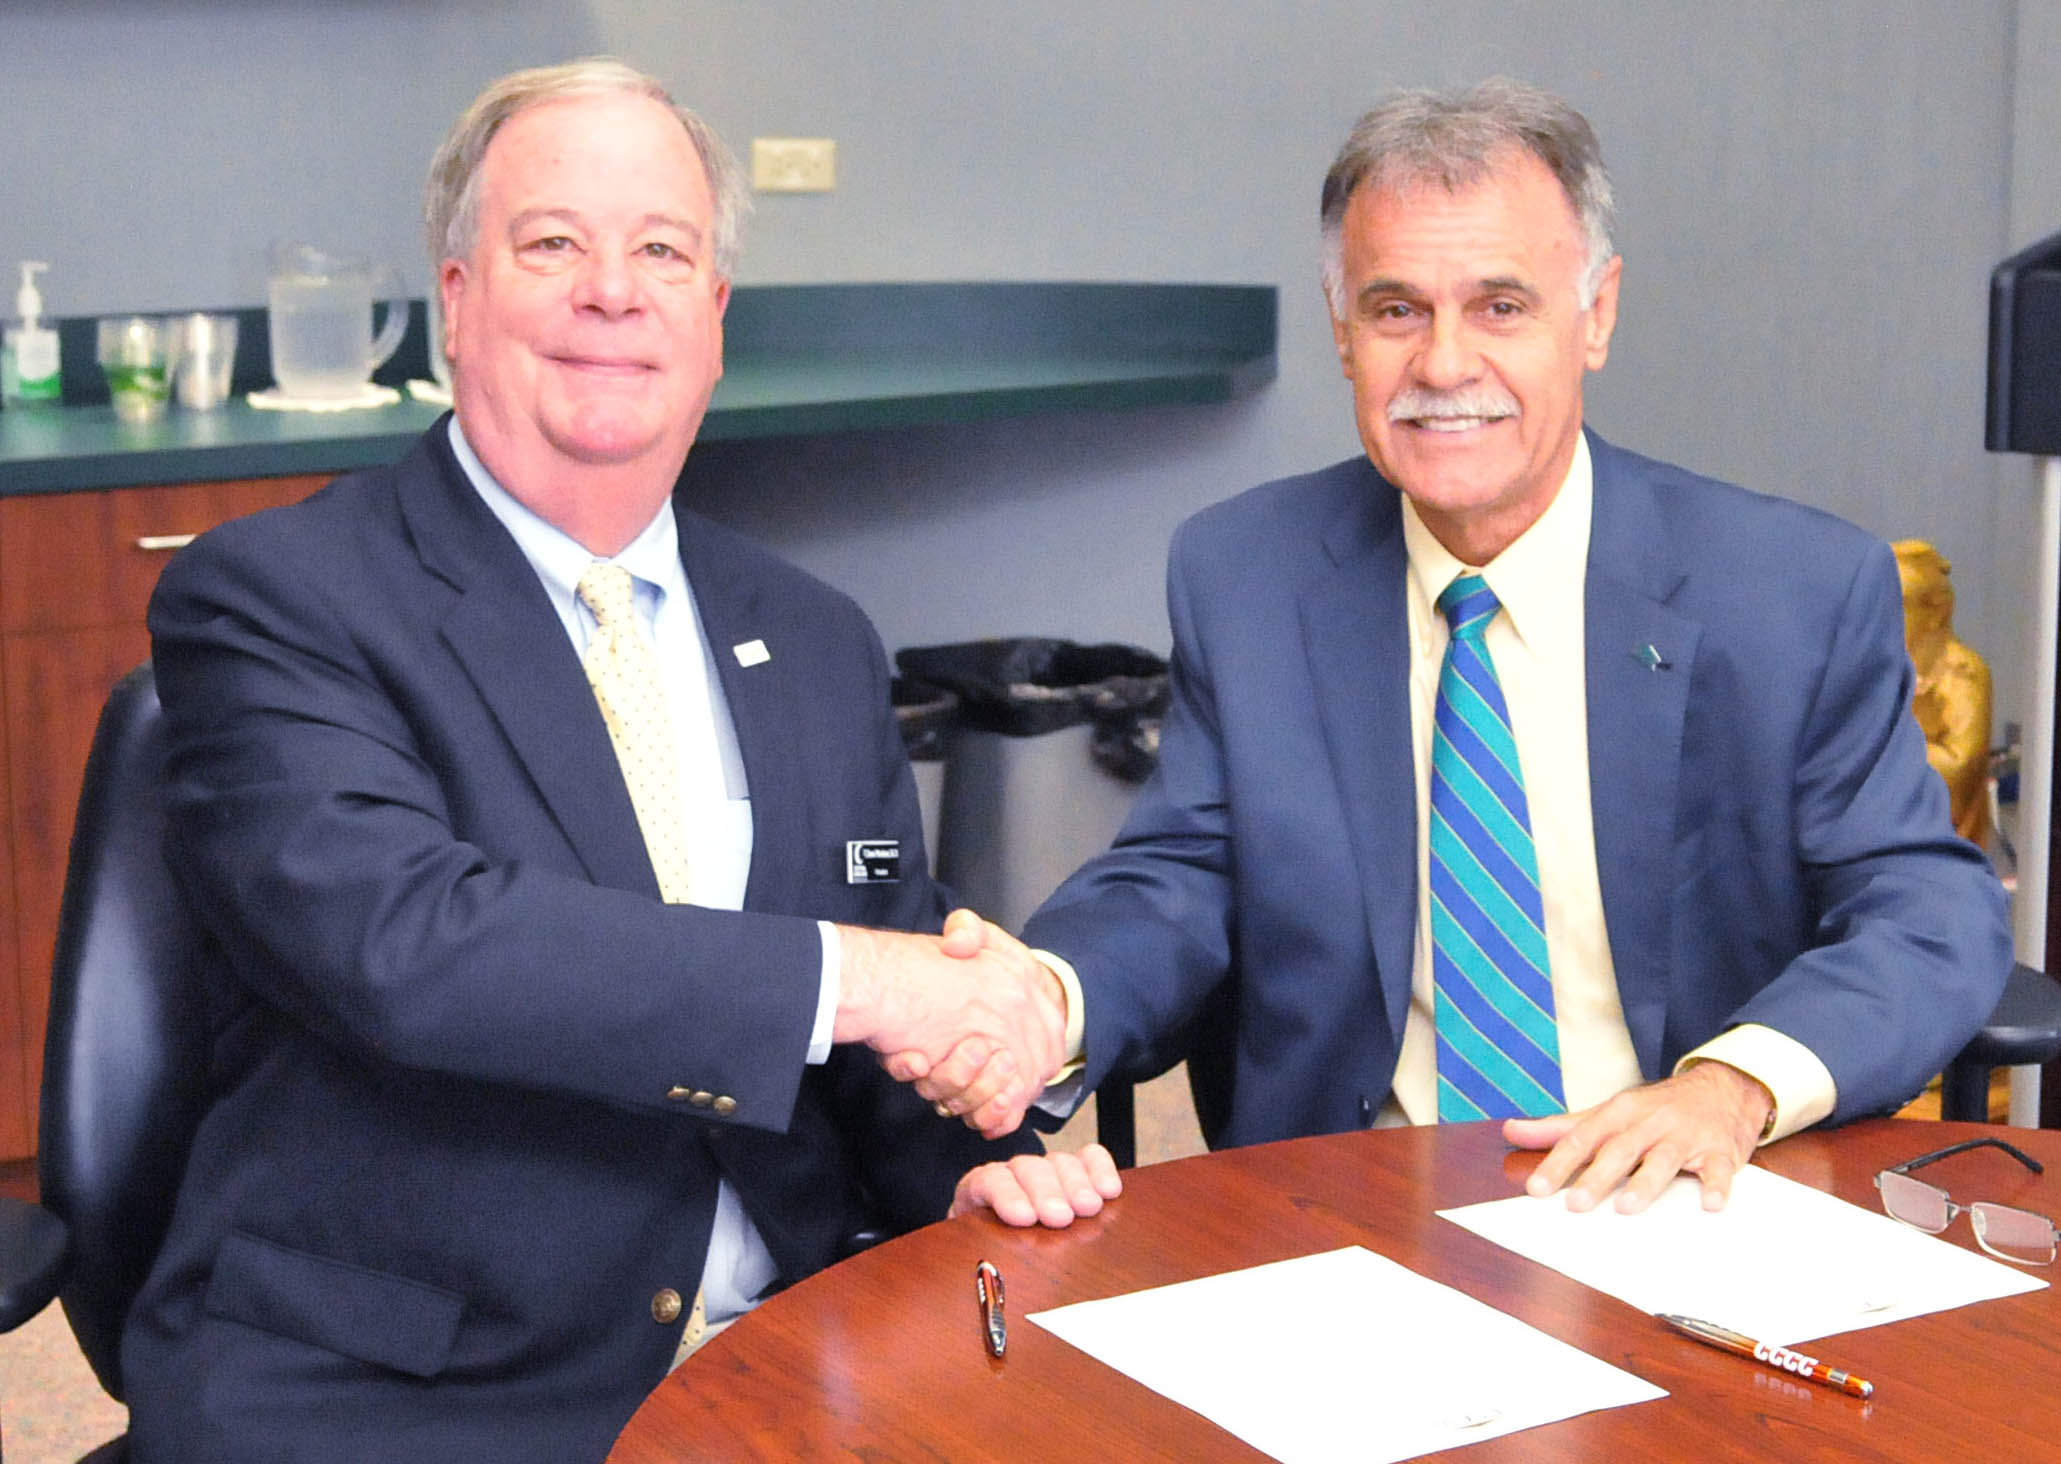 Click to enlarge,  Central Carolina Community College and The University of North Carolina Wilmington have agreed to a partnership called the Pathway to Excellence Program.  CCCC President Dr. T. Eston Marchant (left) and UNCW Chancellor Jose V. Sartarelli shake hands after signing the agreement.